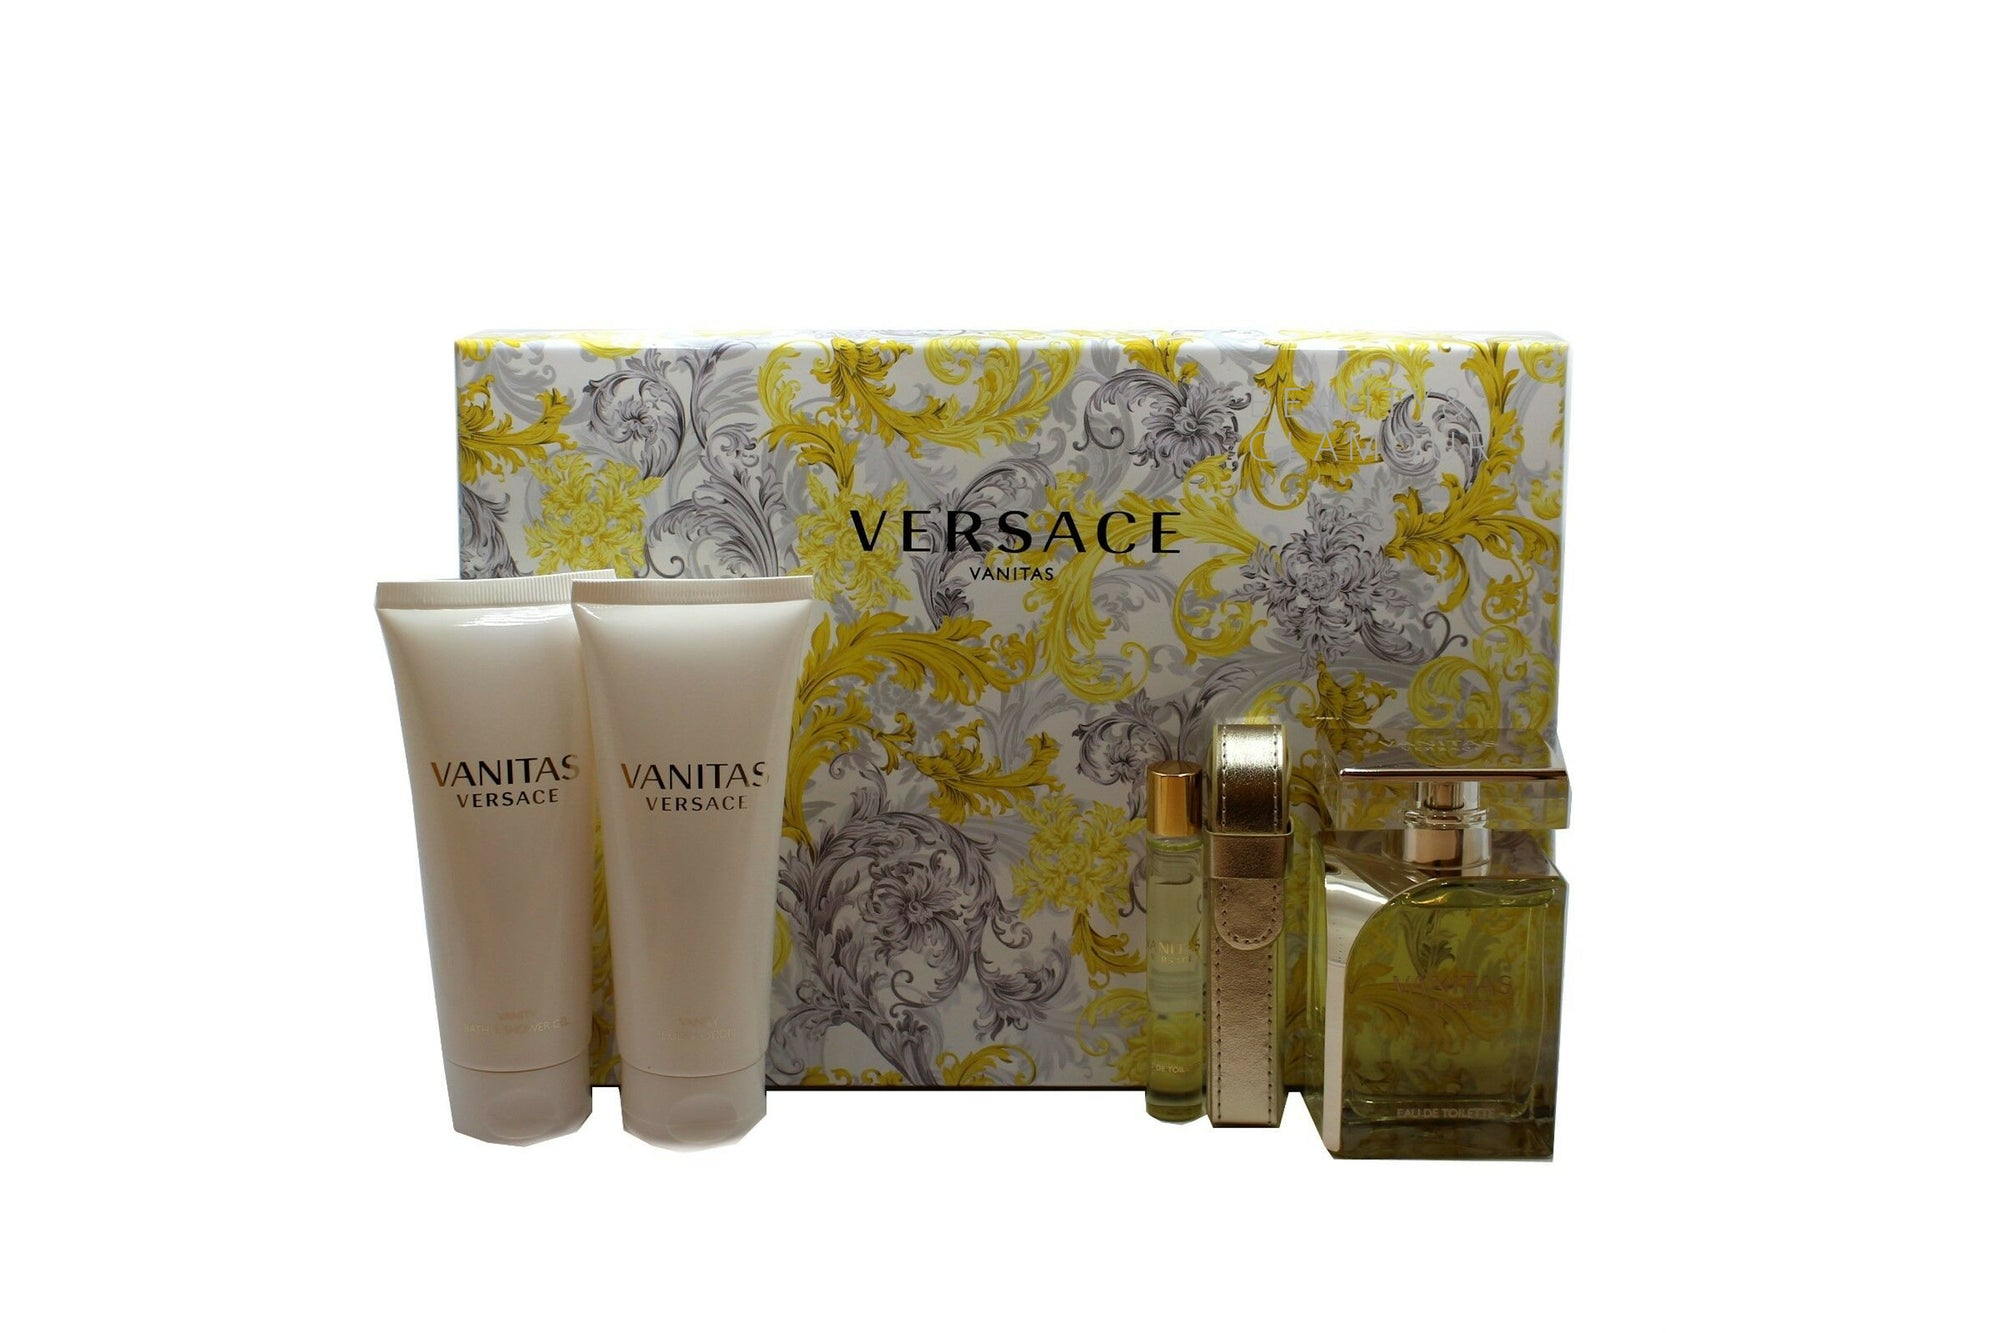 VERSACE VANITAS 4 PIECE GIFT SET FOR WOMEN